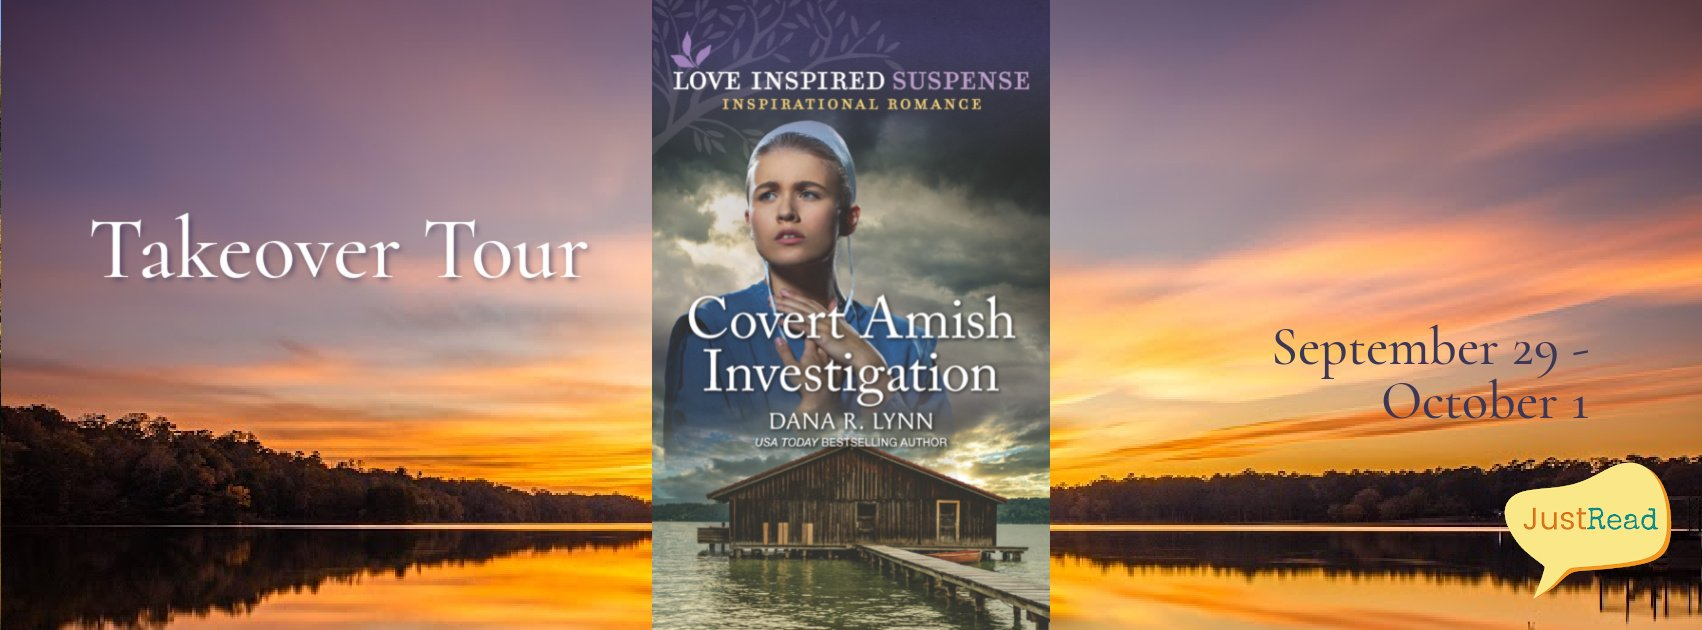 Covert Amish Investigation JustRead Takeover Tour